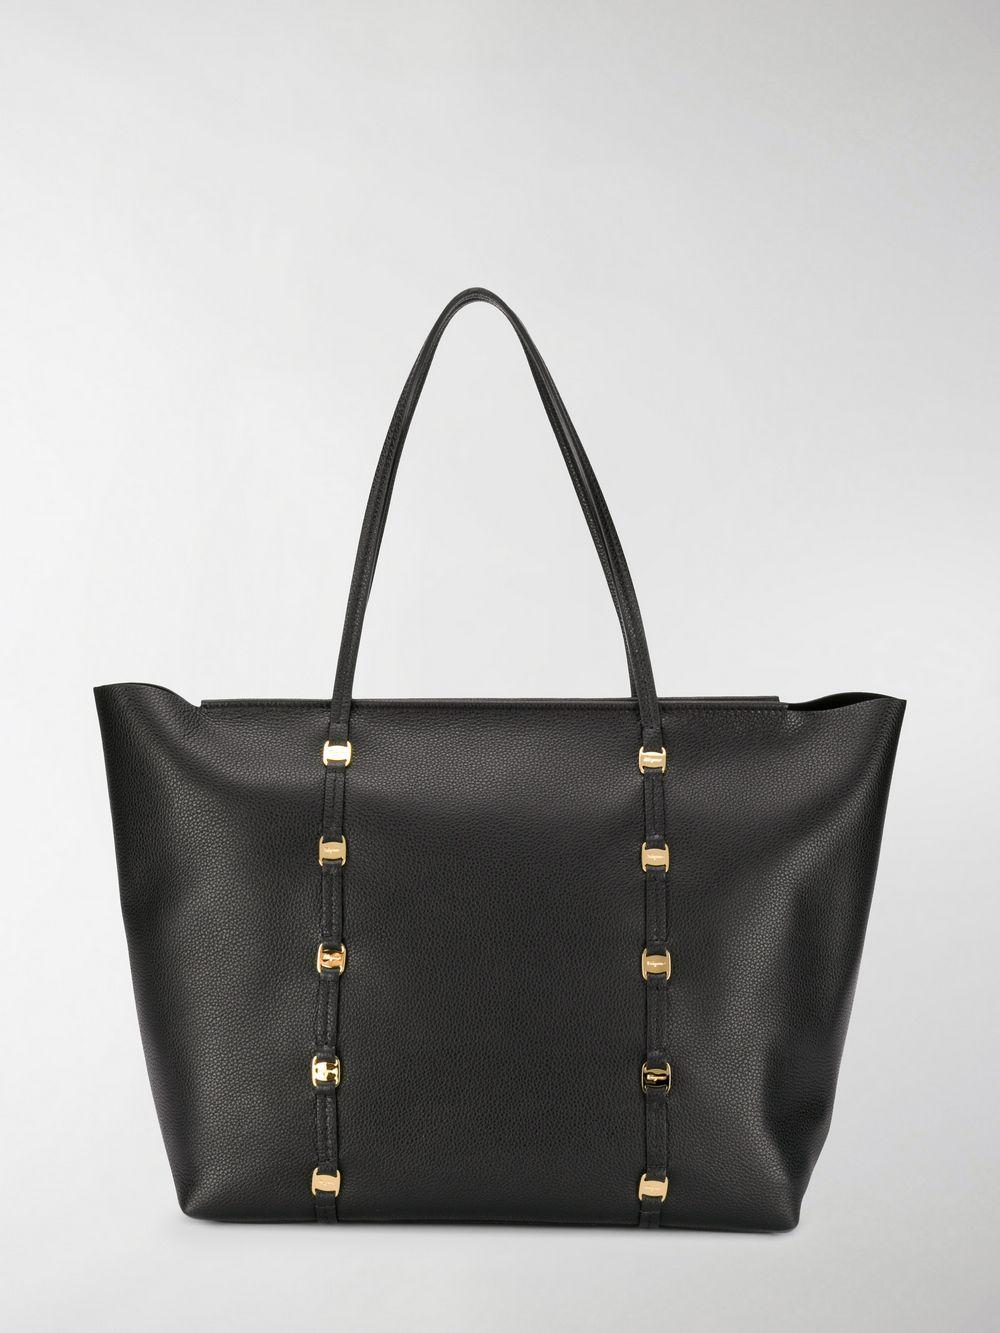 a122e7a59776 Lyst - Ferragamo Emotion Tote Bag in Black